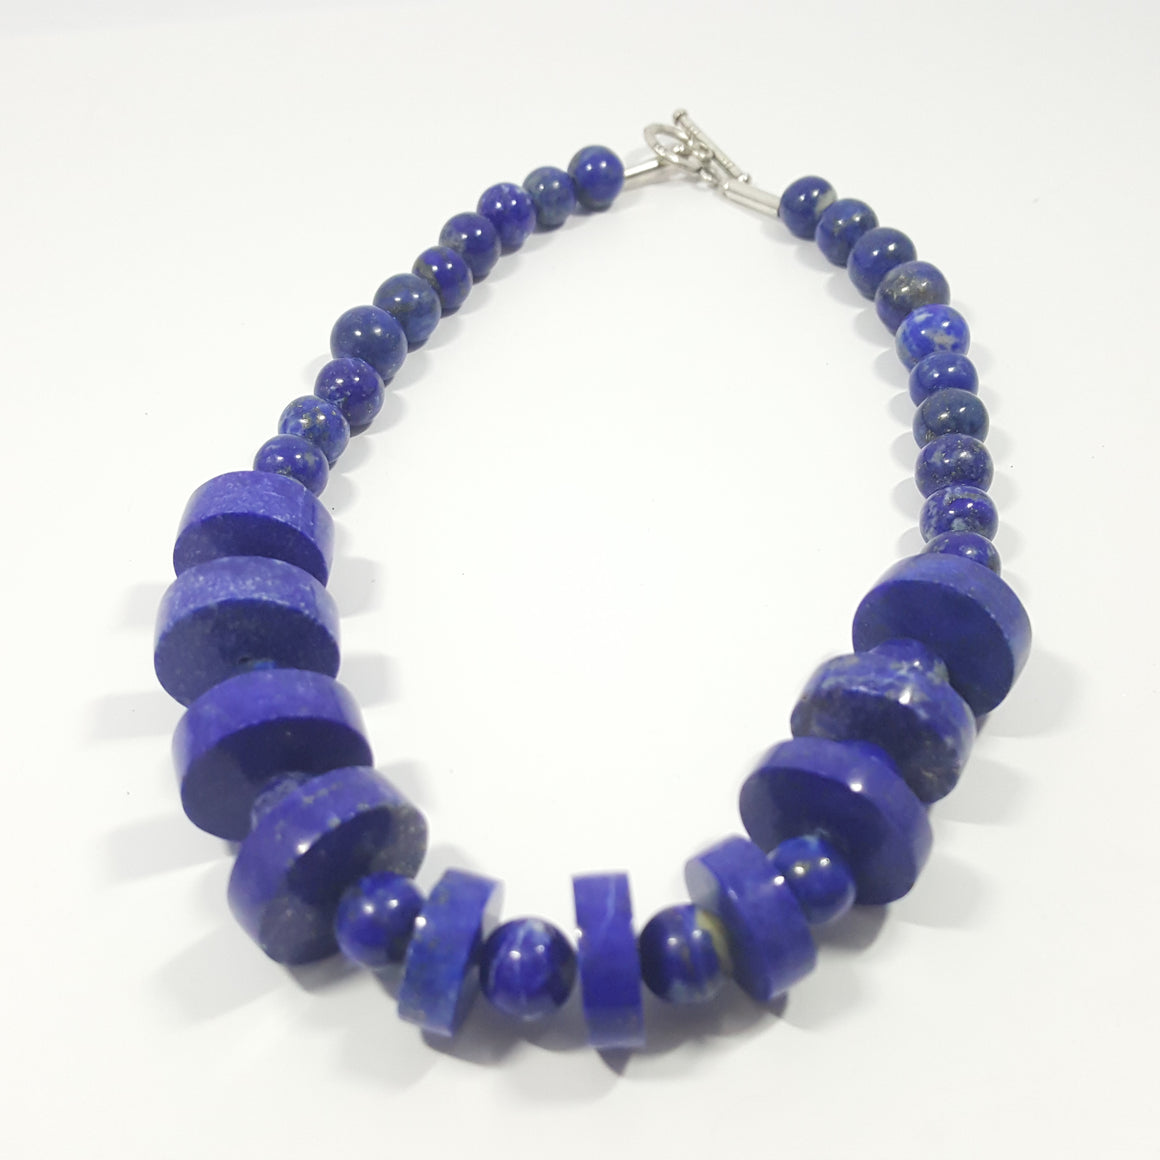 Lapis Lazuli Necklace - Lapis Necklace Disk and Round Beads -372.85 ct